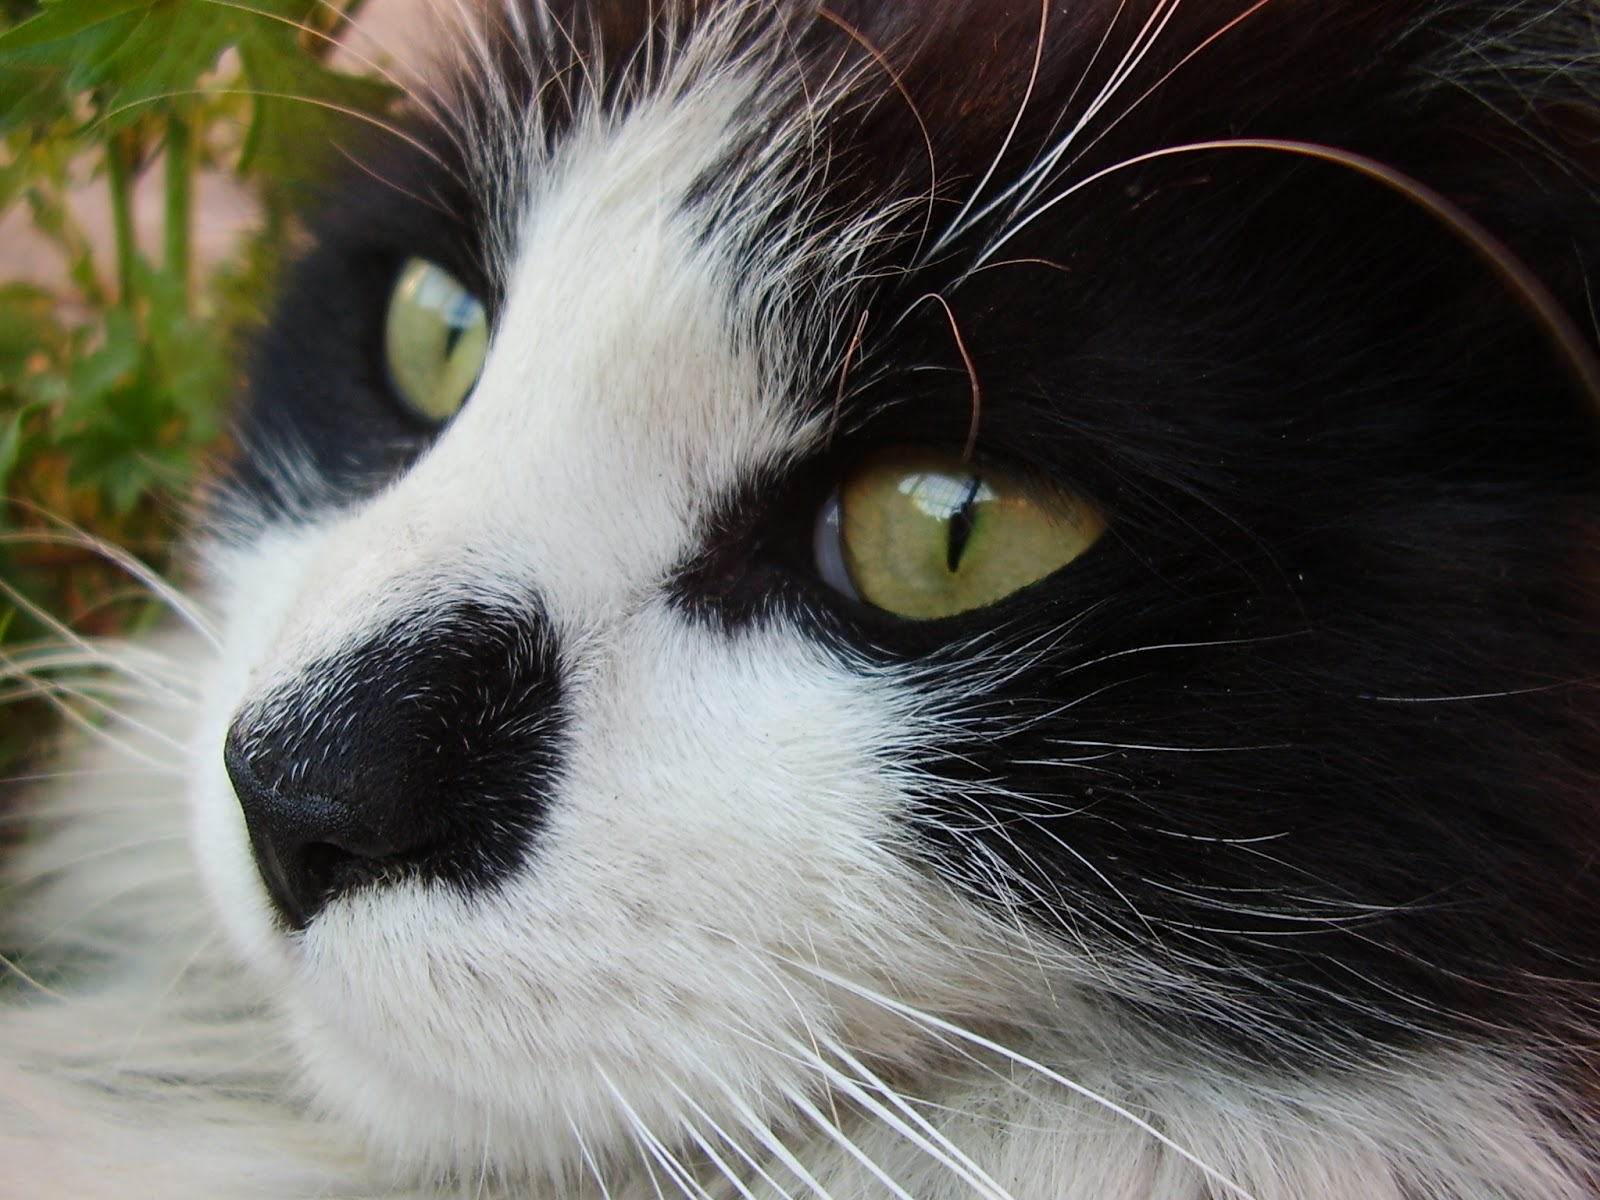 Don gato by Oscar Maltez from flickr (CC-NC)